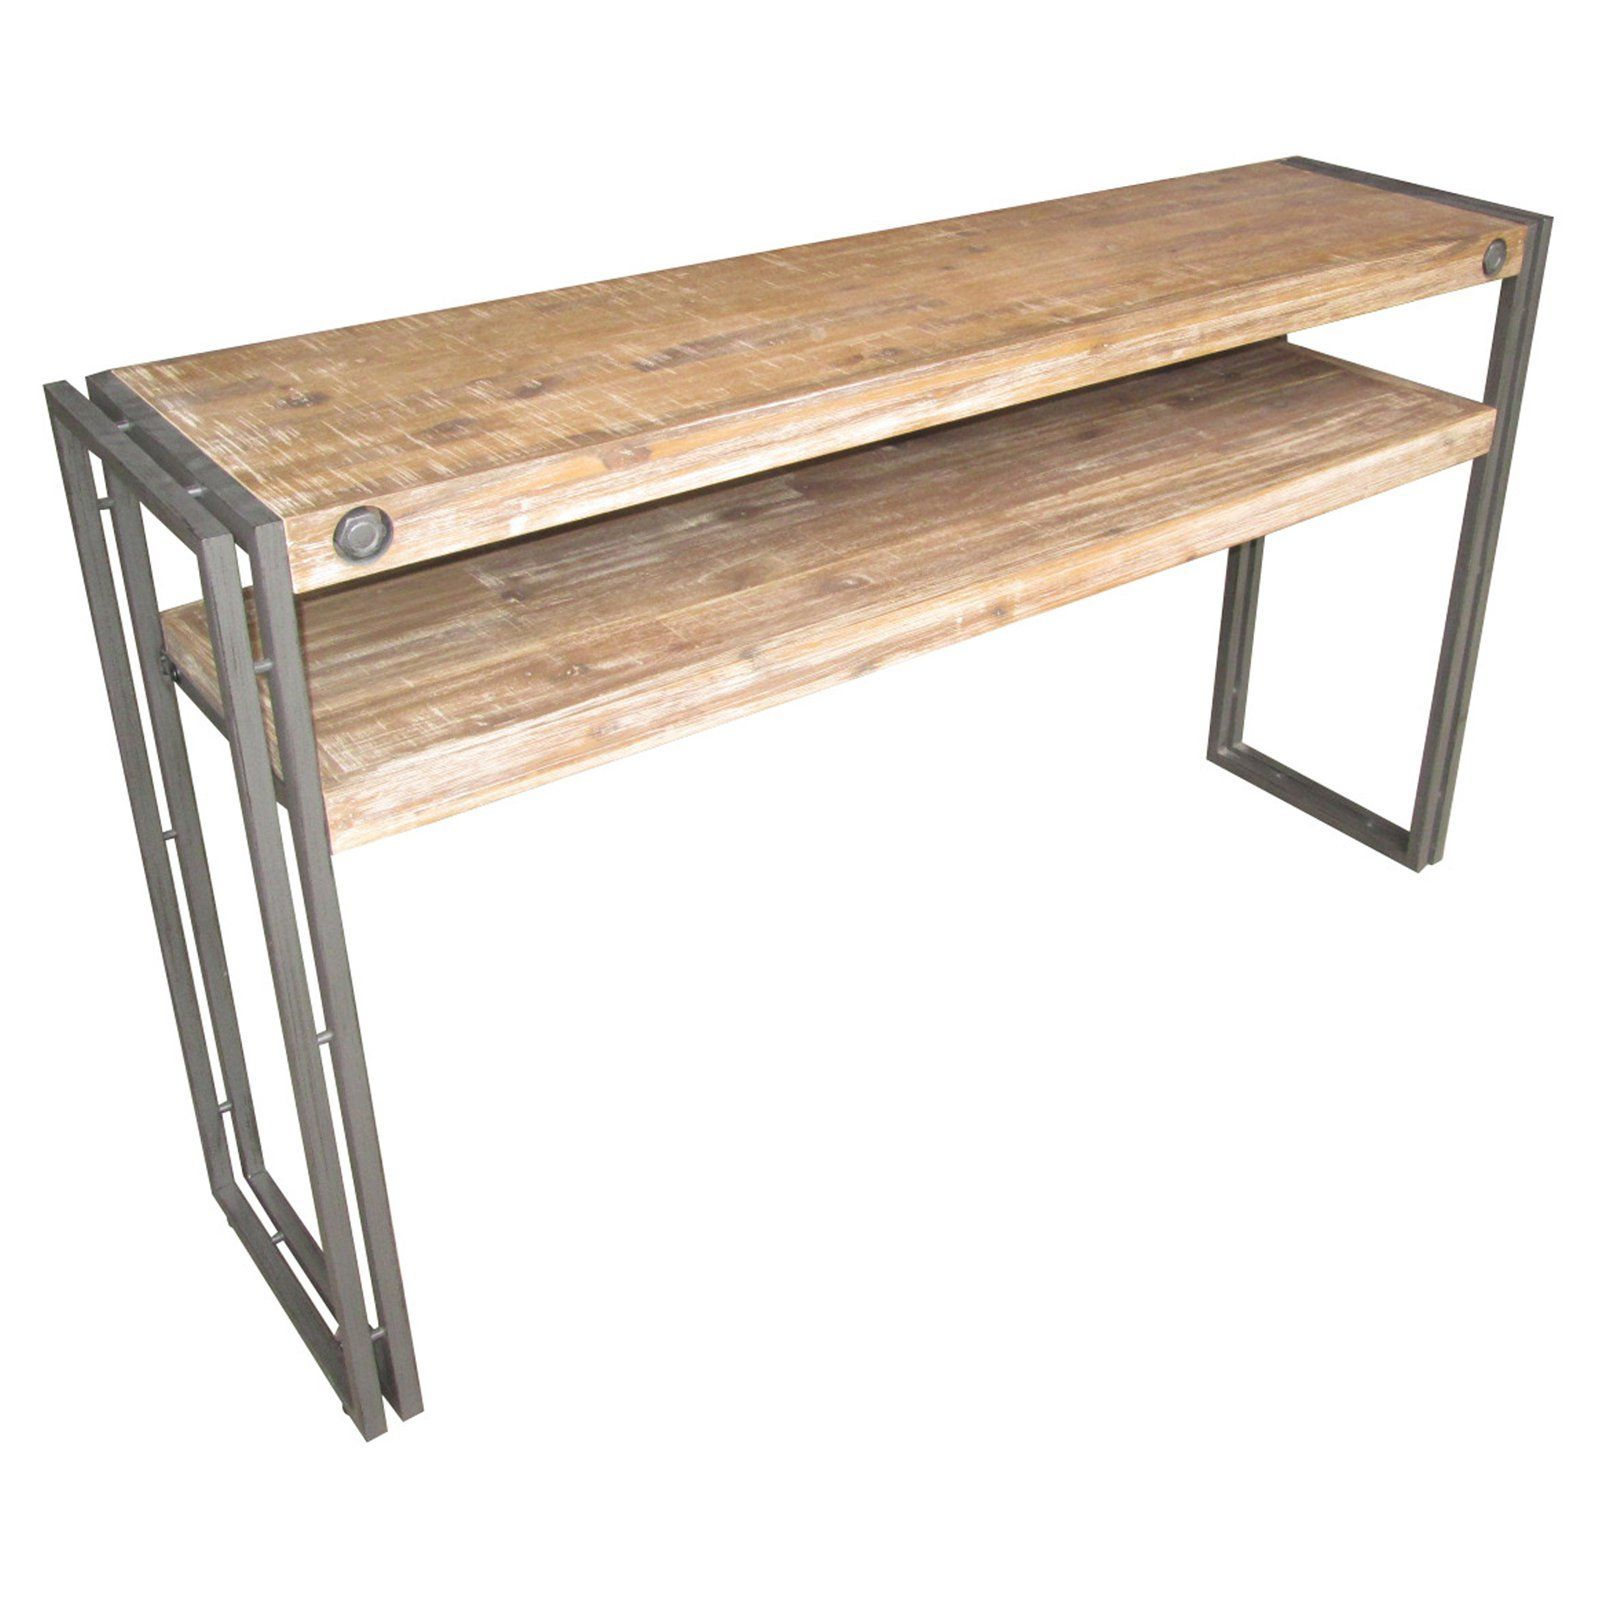 Moes home collection brooklyn console table natural gray moes home collection brooklyn console table natural gray from hayneedle geotapseo Choice Image